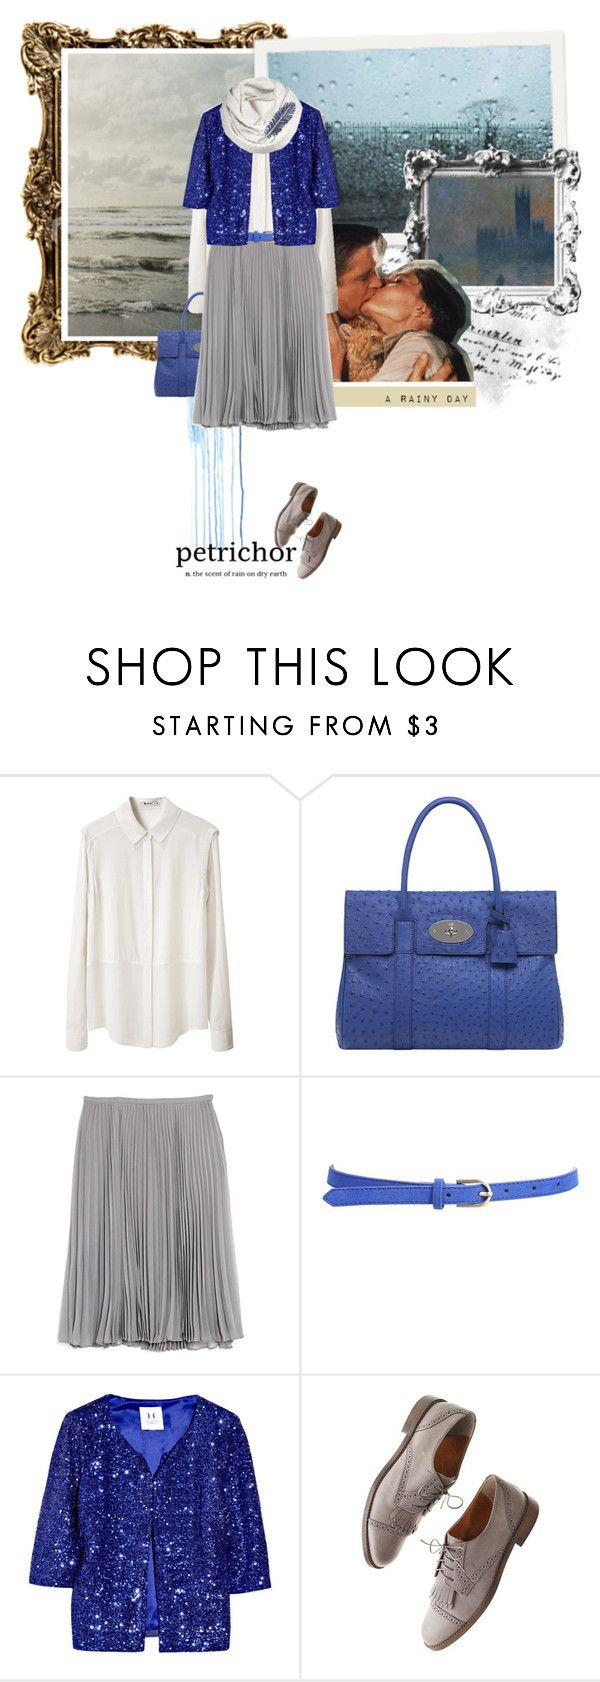 """""""How a cloud would dress."""" by reblou ❤ liked on Polyvore featuring Tiffany & Co., T By Alexander Wang, Mulberry, Halston Heritage, Forever 21, Madewell, AllSaints, top handle bags, pleated skirts and sequins"""